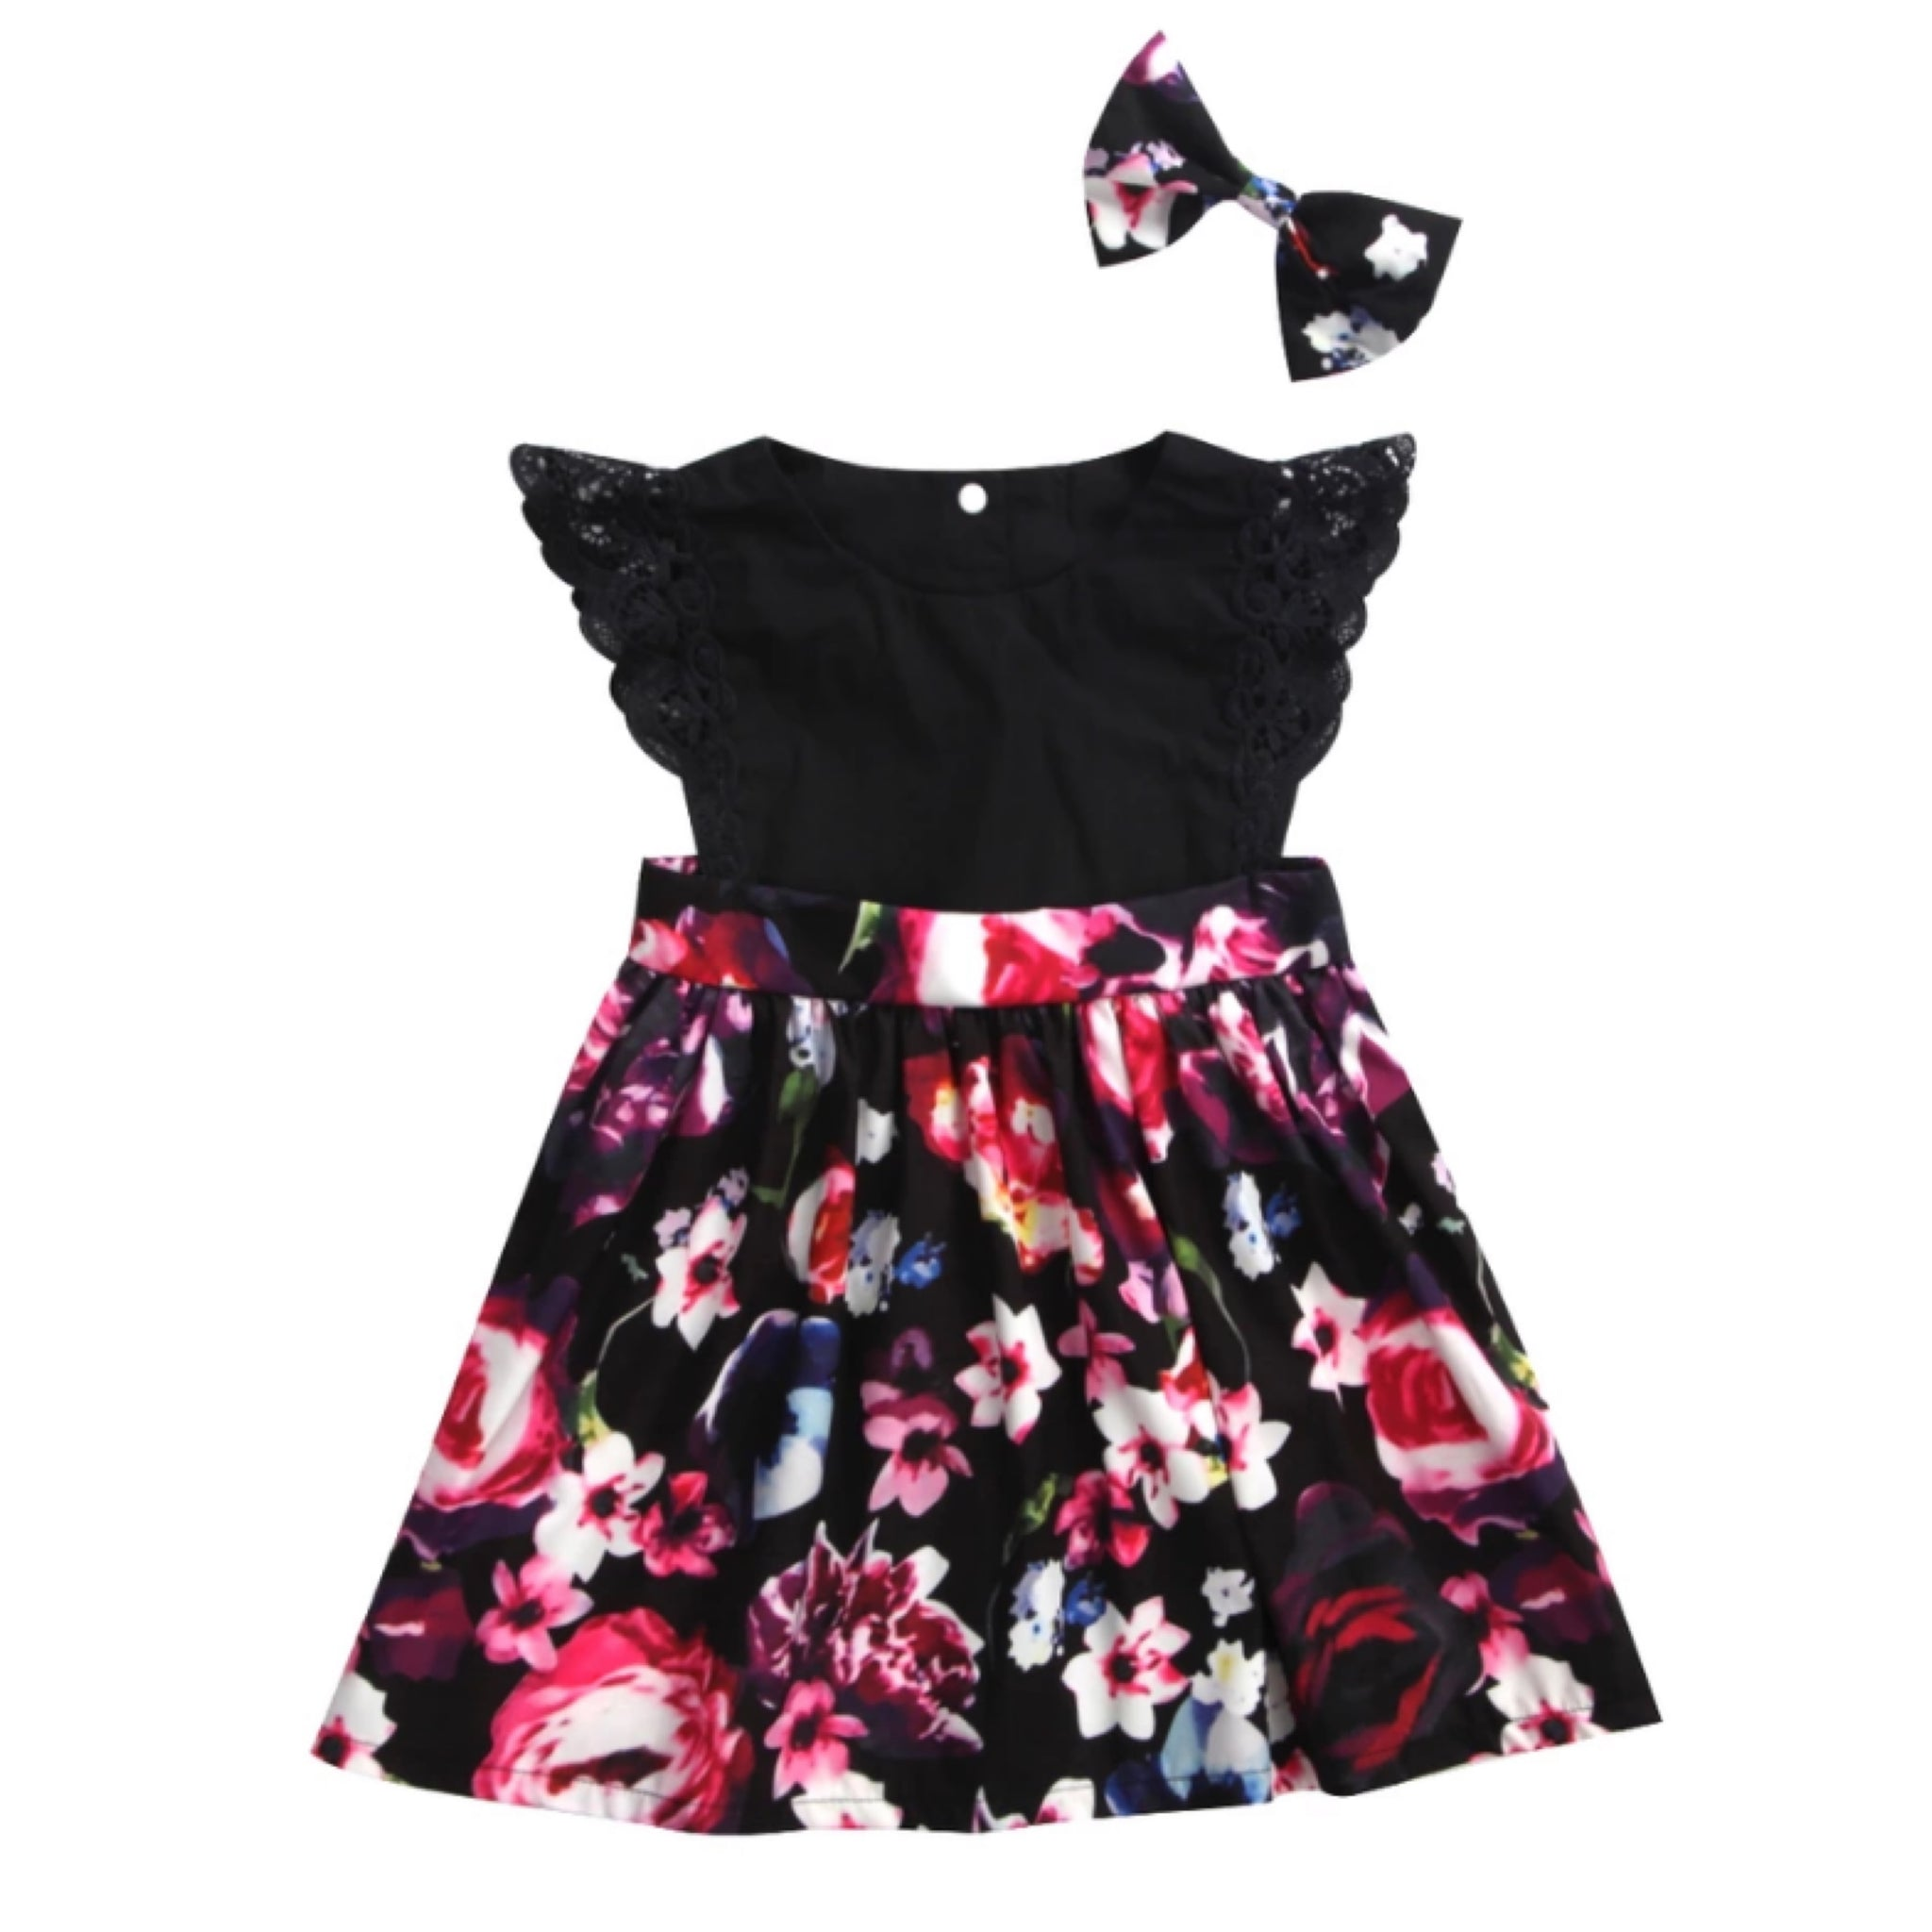 Kids-Dress-Black-Floral-Set-Bow